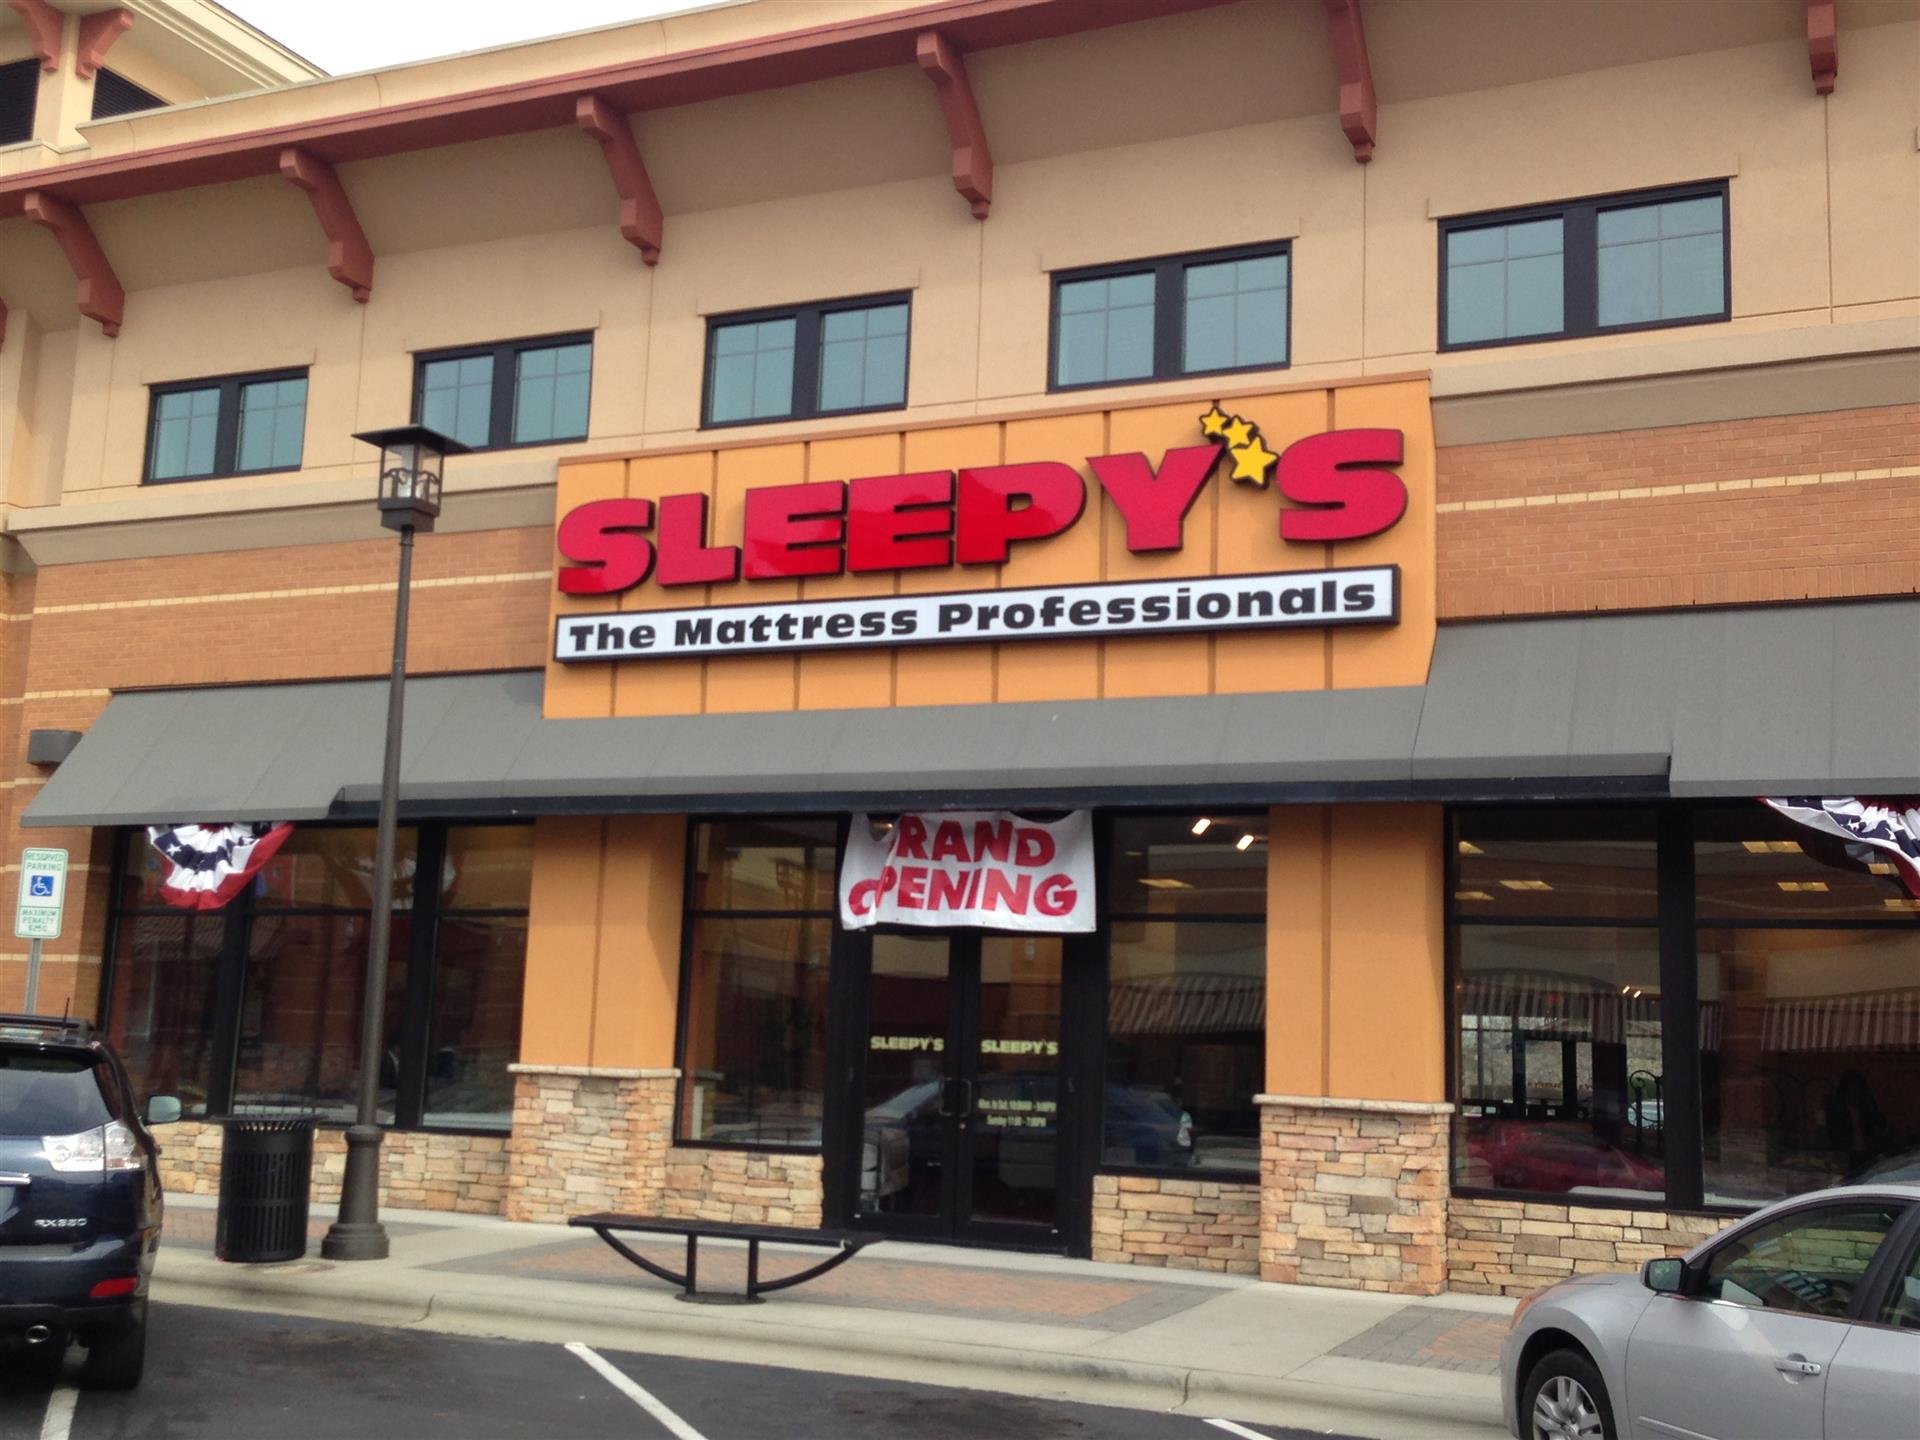 gallery photo : Sleepy's Stores Interior Renovation and Buildout